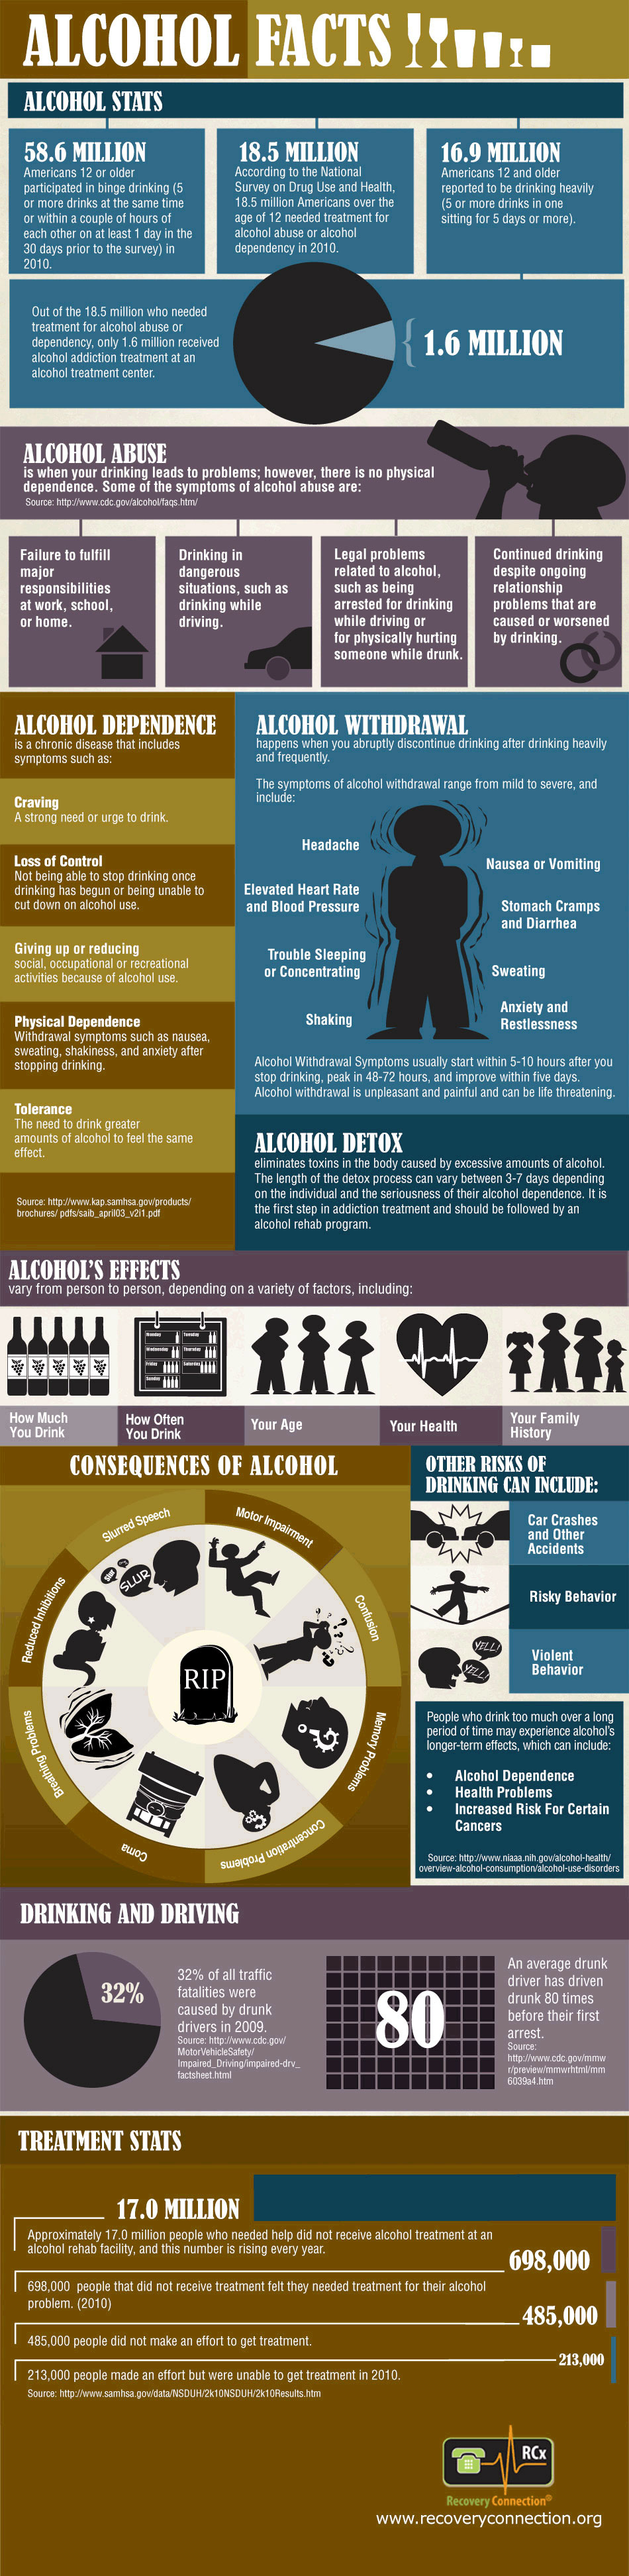 Alcohol Facts Infographic